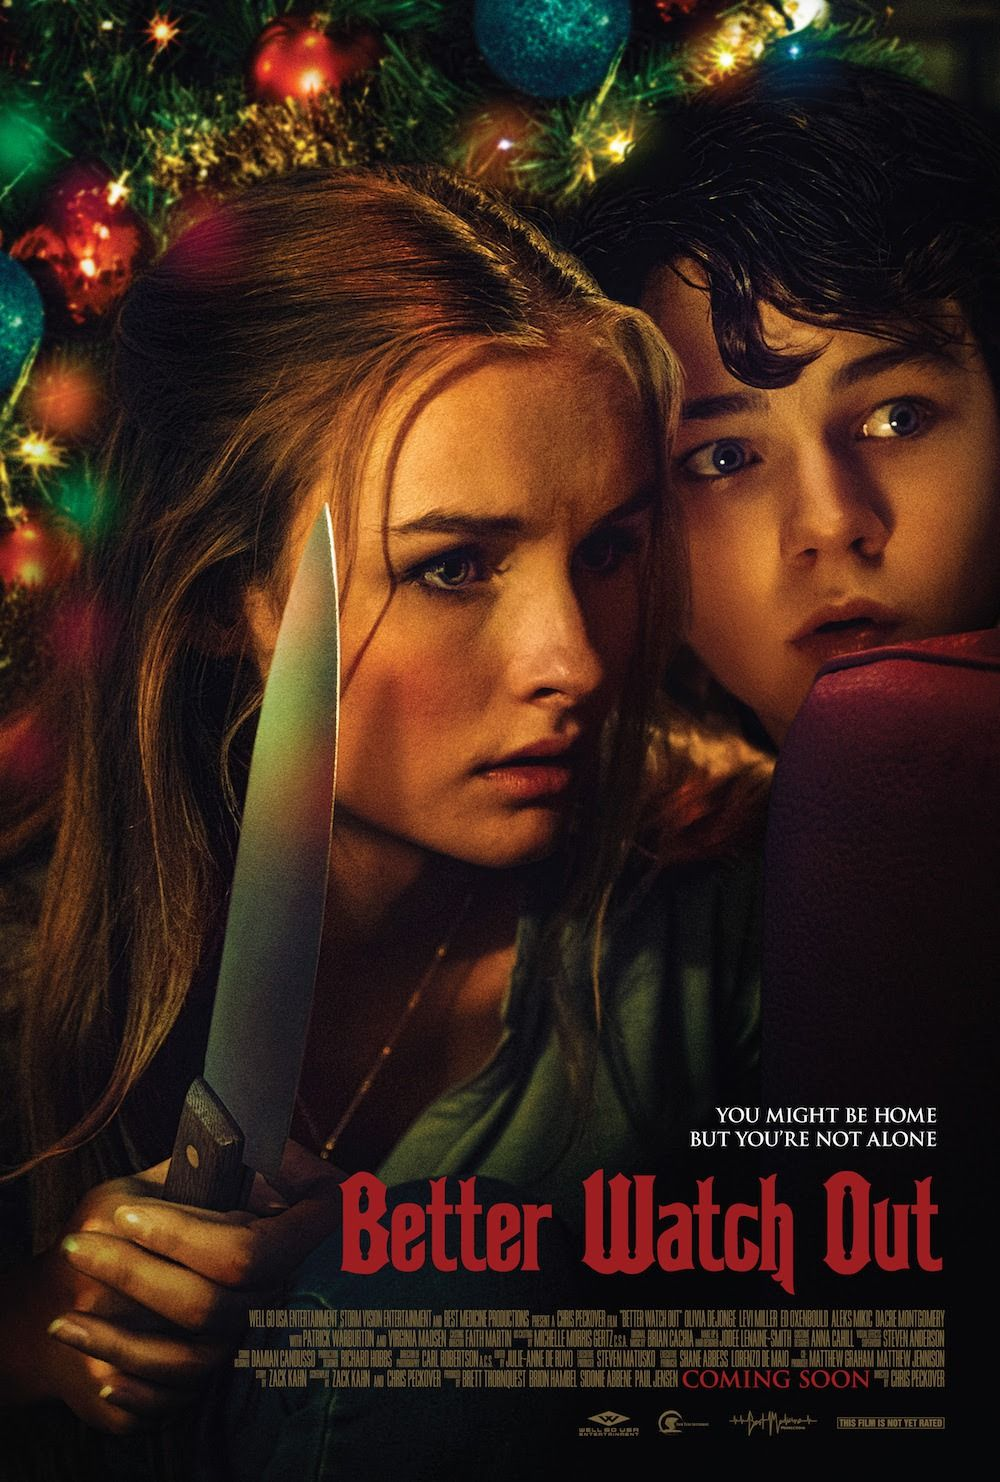 Better Watch Out Free Movies Online Full Movies Online Free Streaming Movies